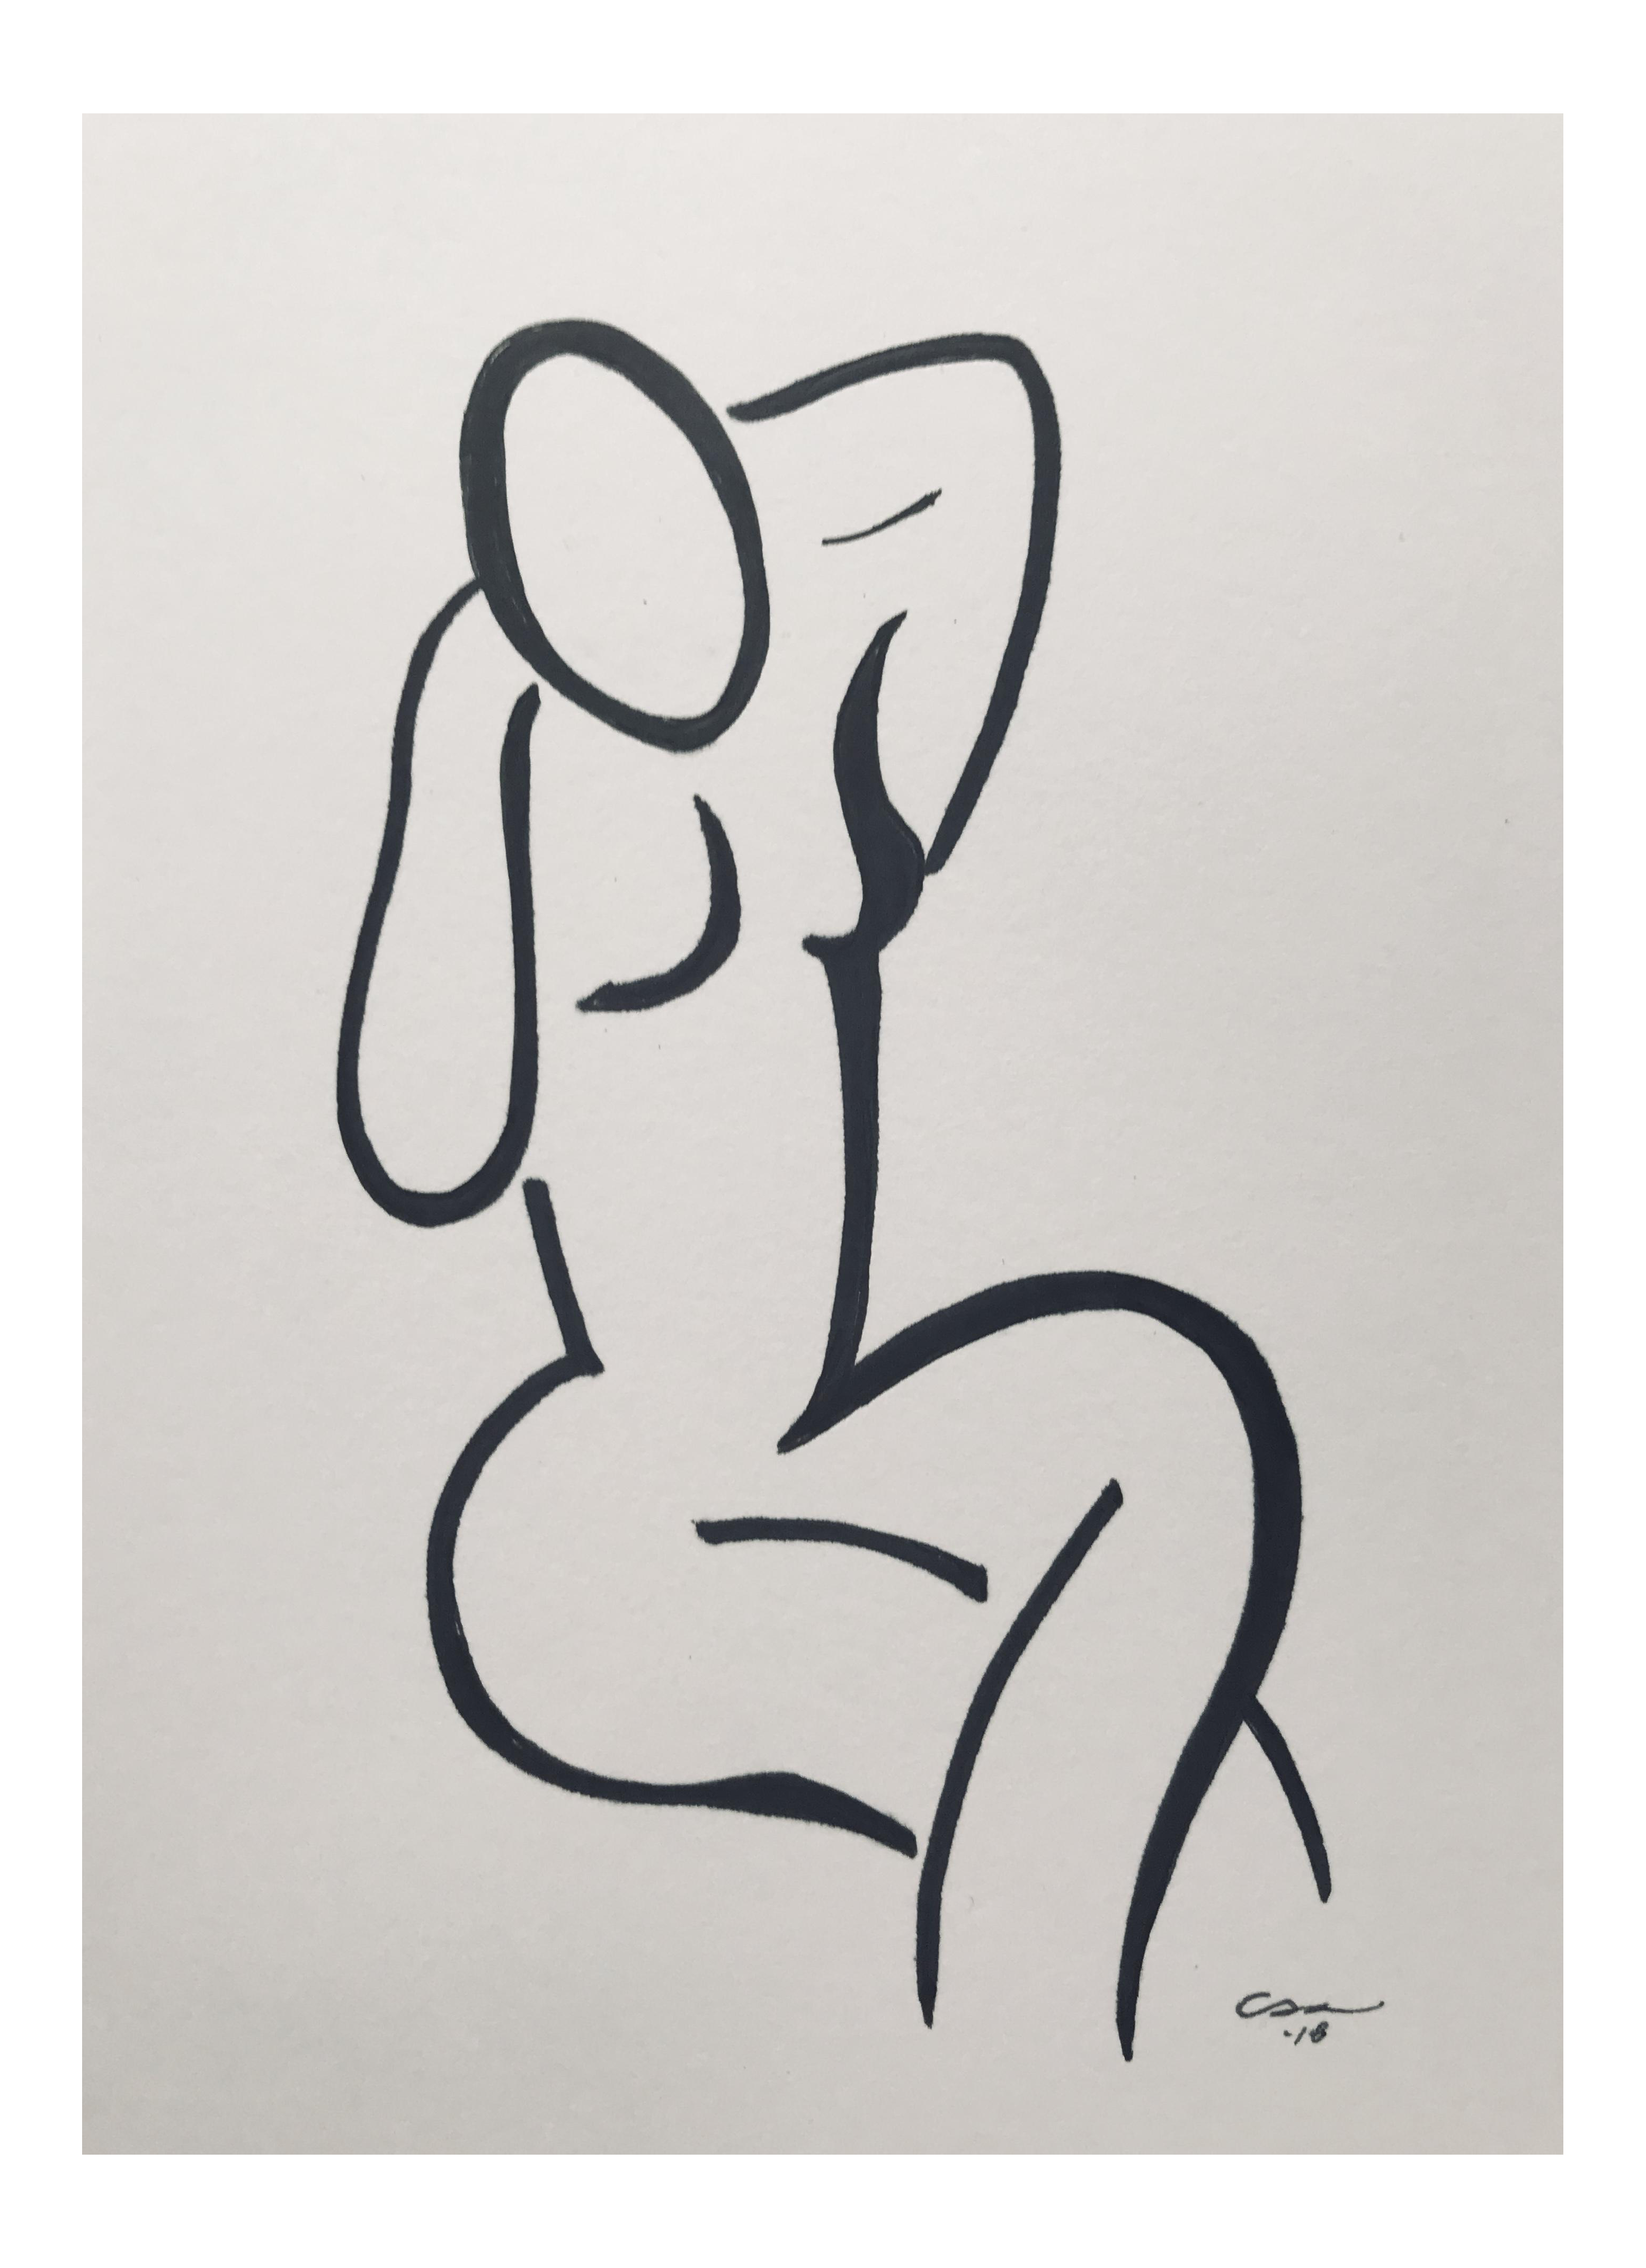 Drawing roads minimalist. Original figure seated chairish